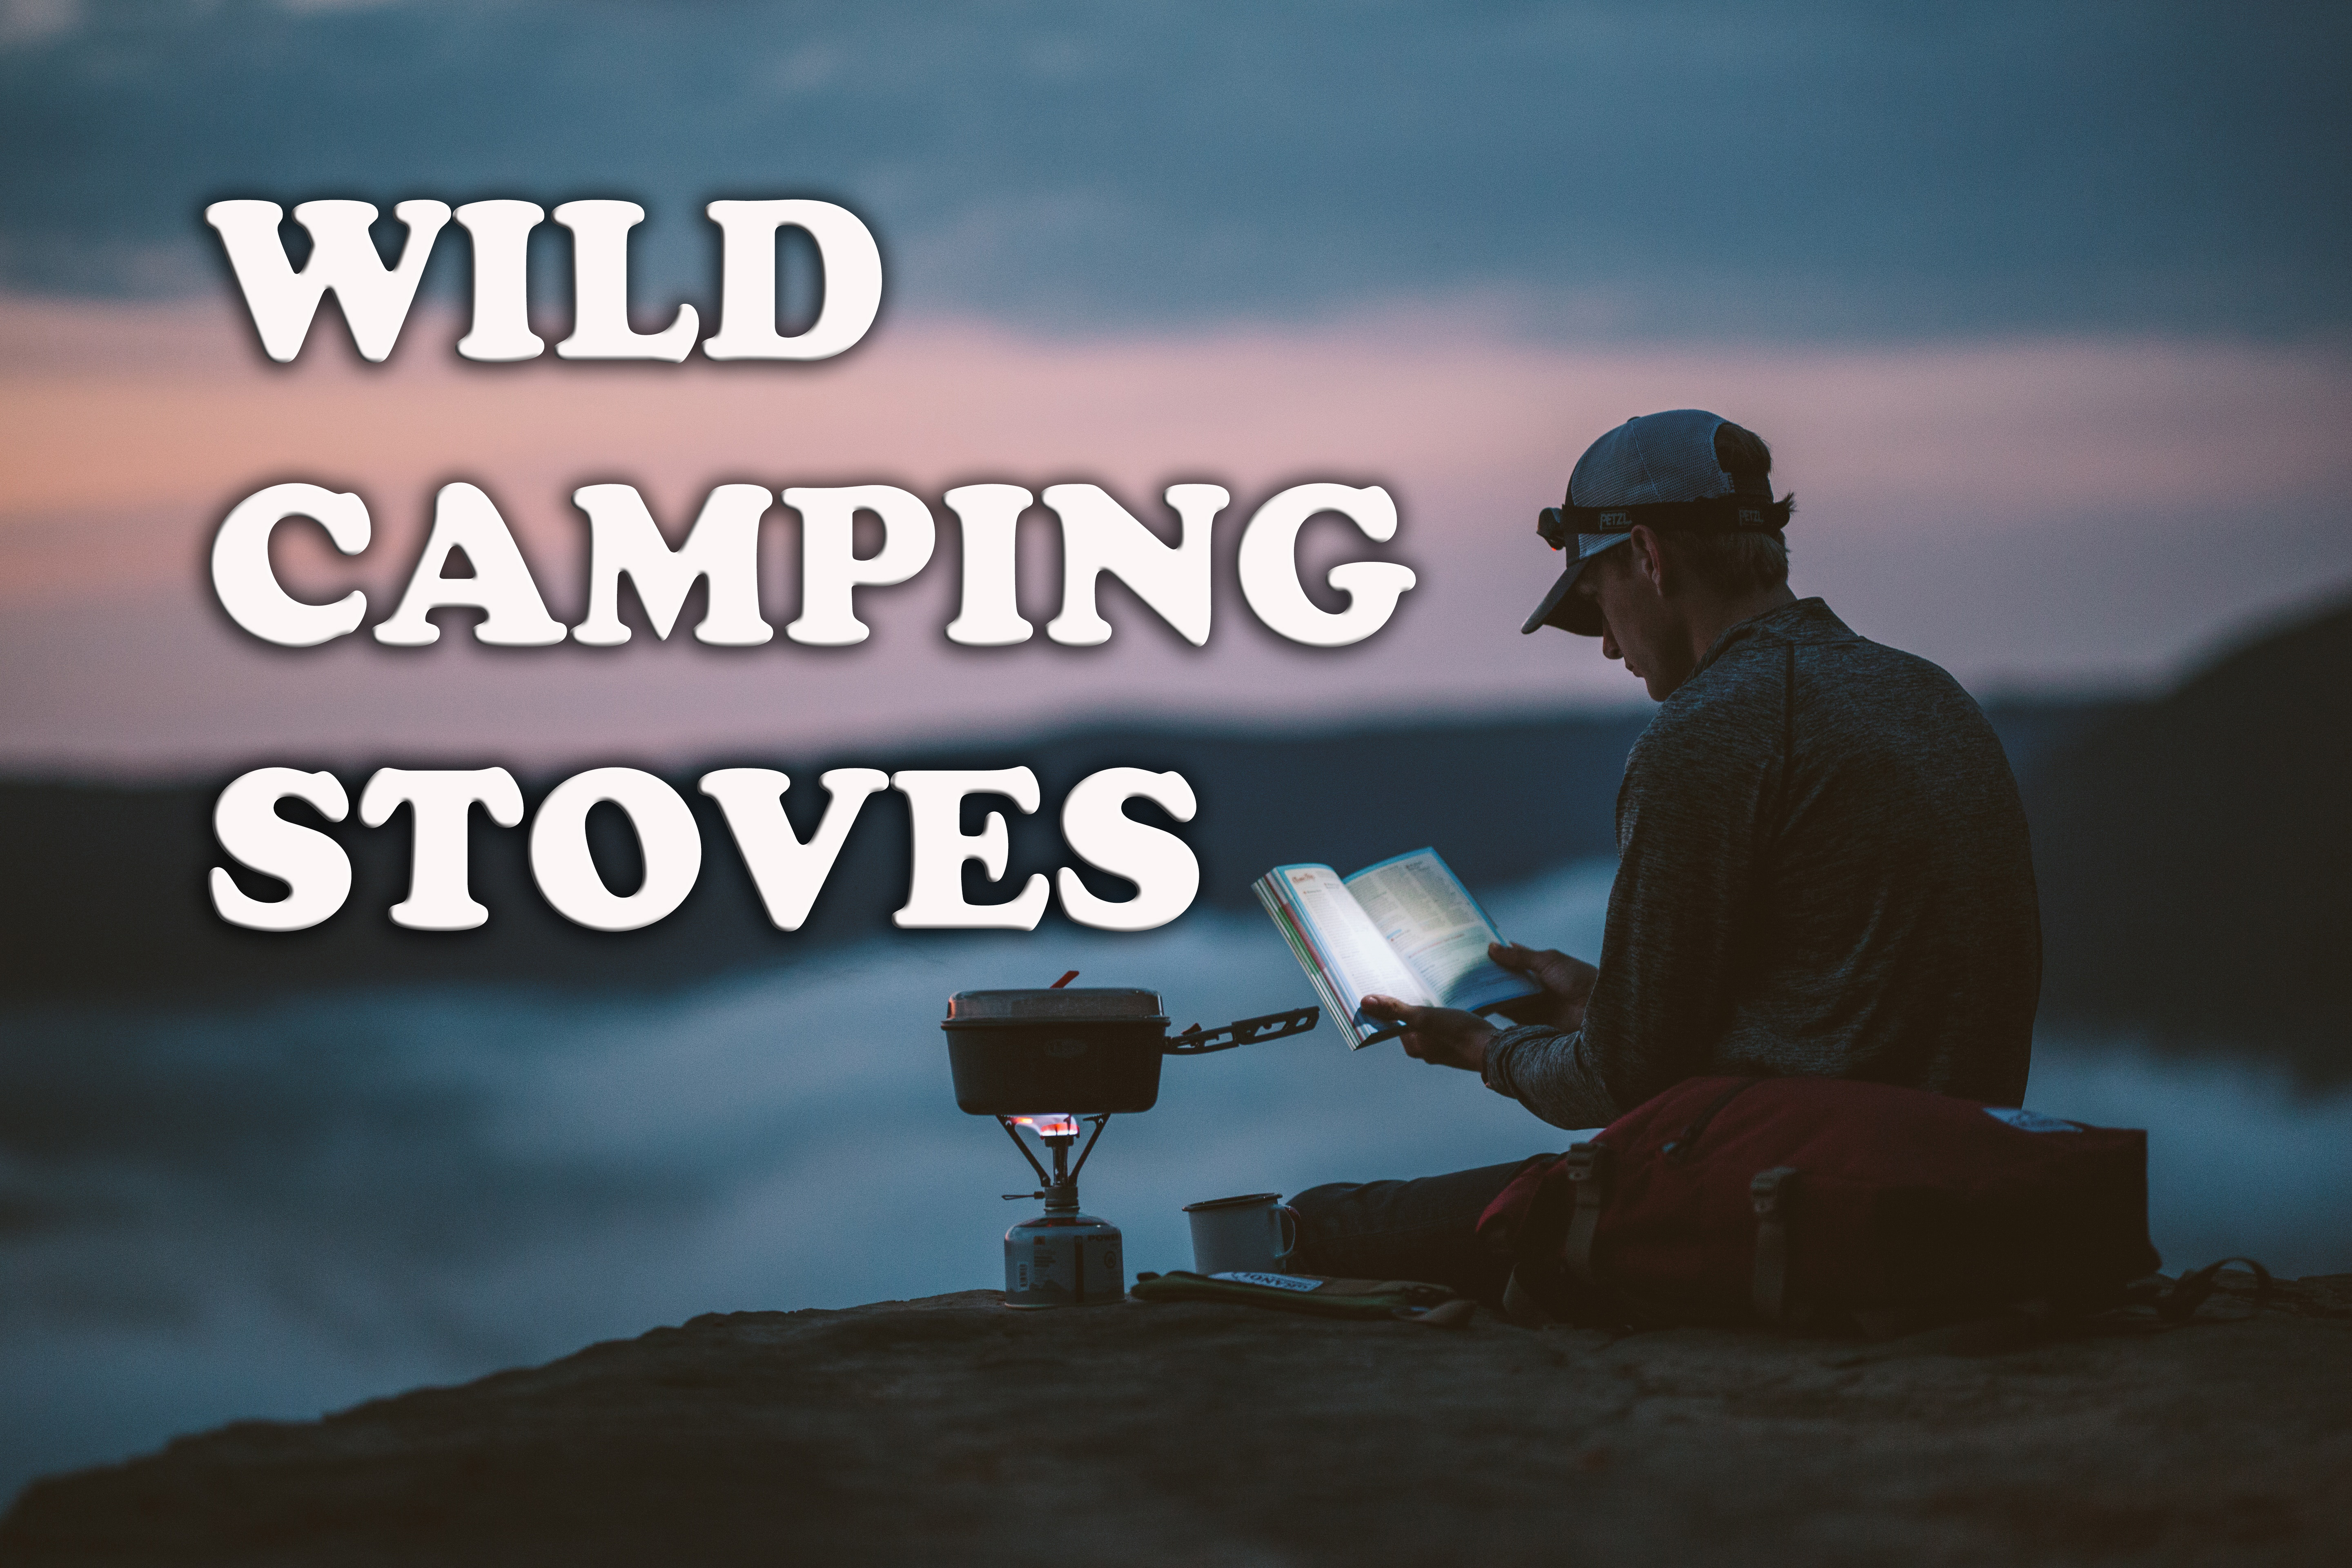 Wild camping stoves